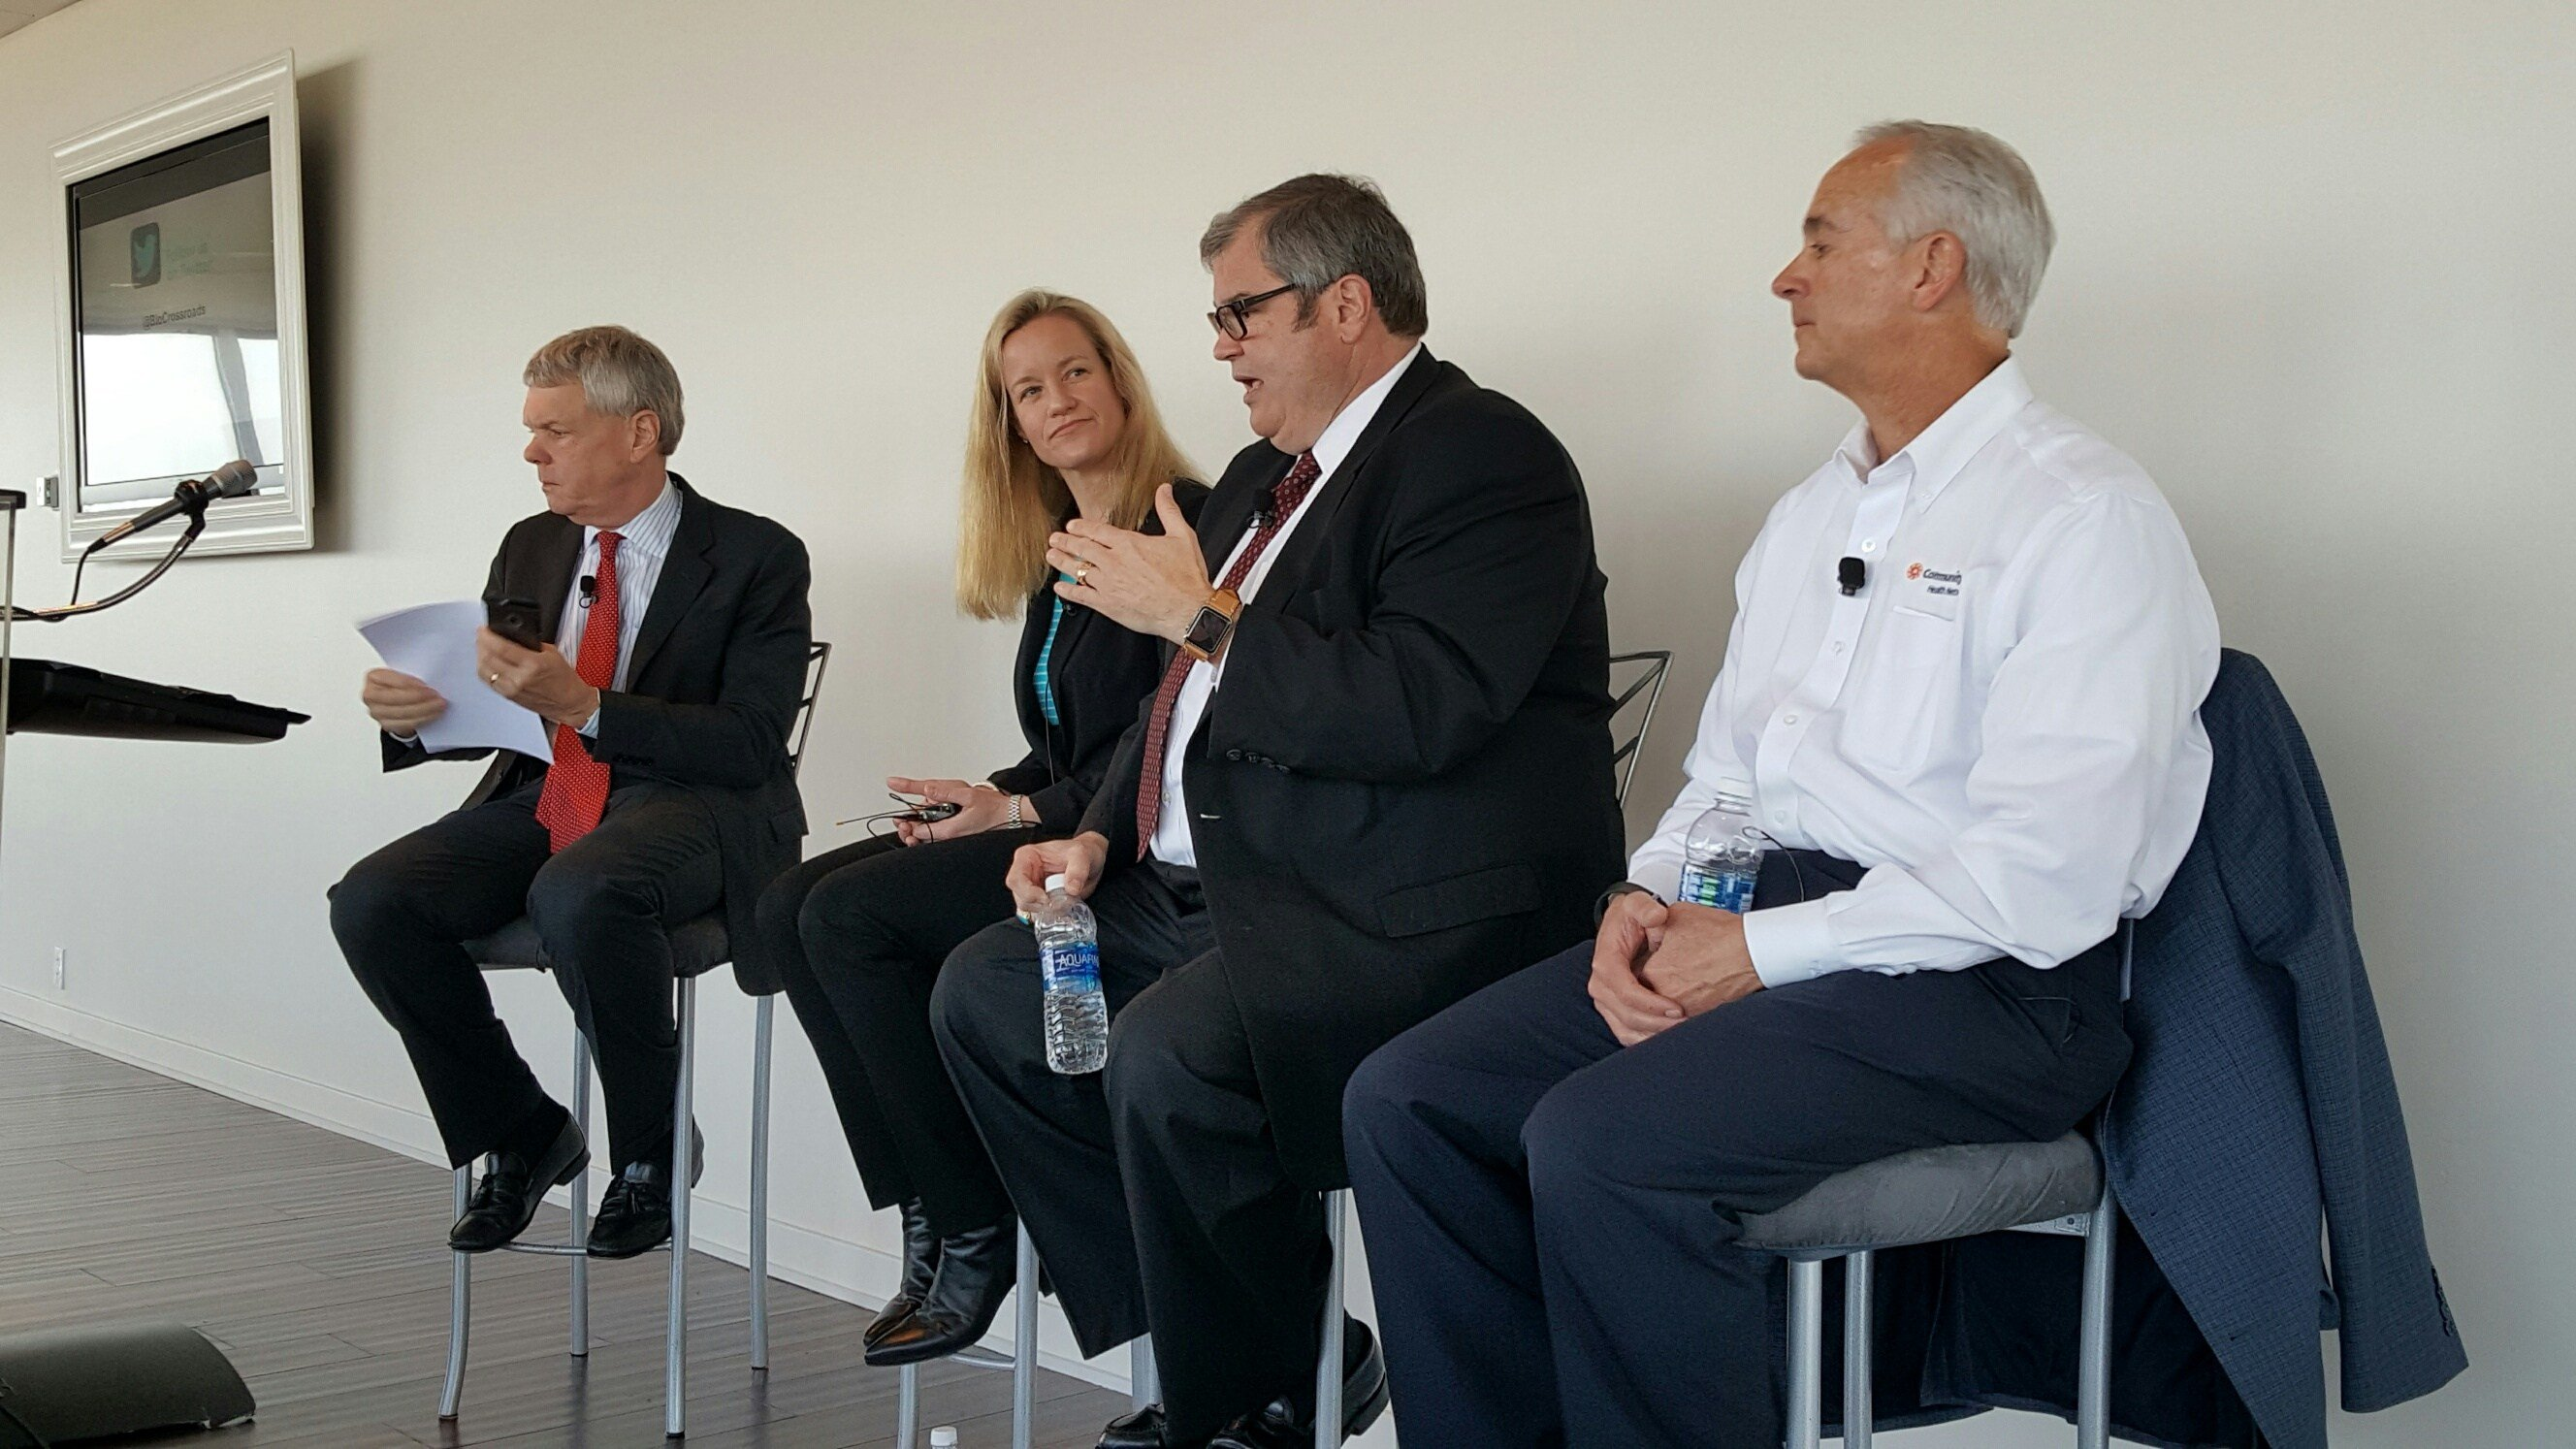 David Johnson, Claire Fiddian-Green, Dr. Paul Halverson and Bryan Mills (left to right) lead a panel discussion at a recent Frameworx.